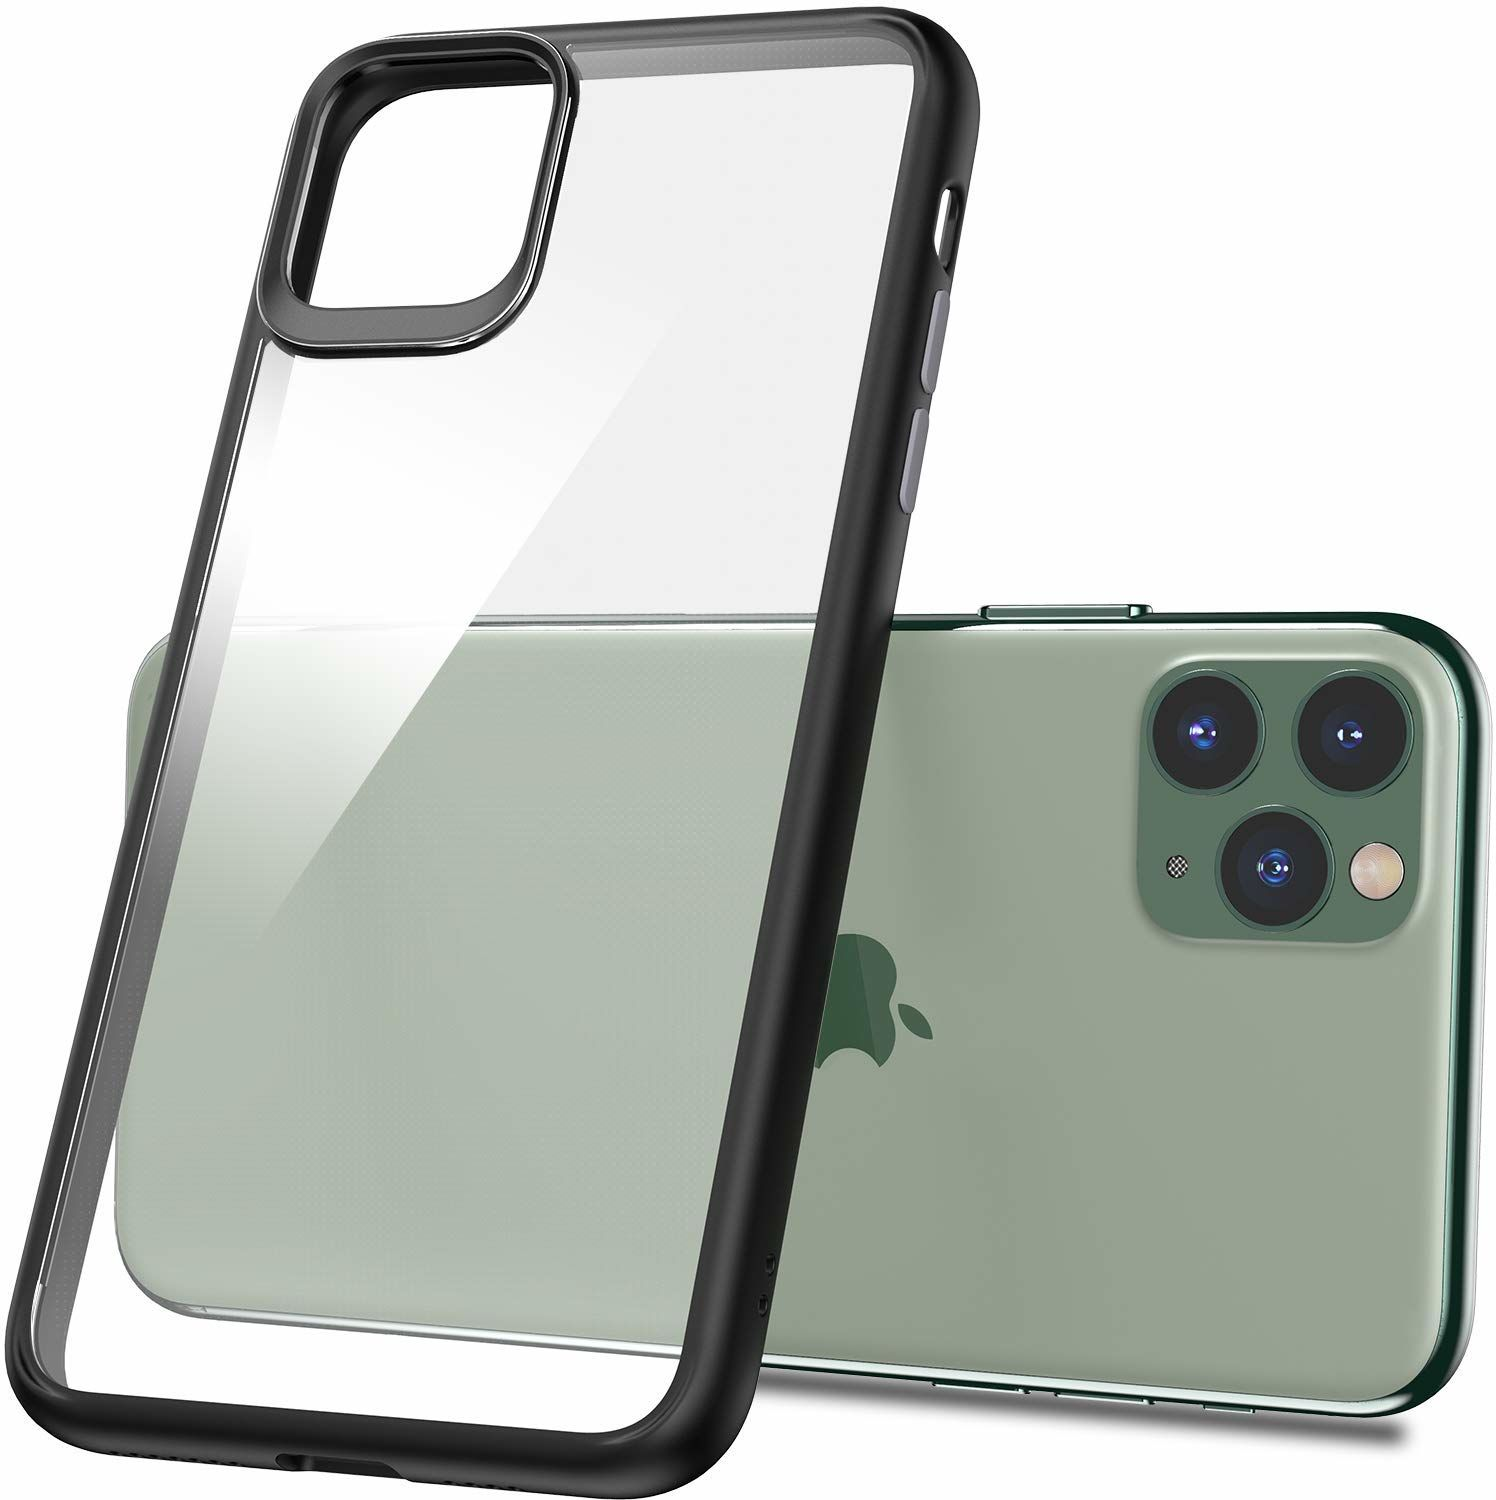 iPhone 11 Pro Max Hybrid, Soft Thin Fit Case, Matte Black with Clear back panel